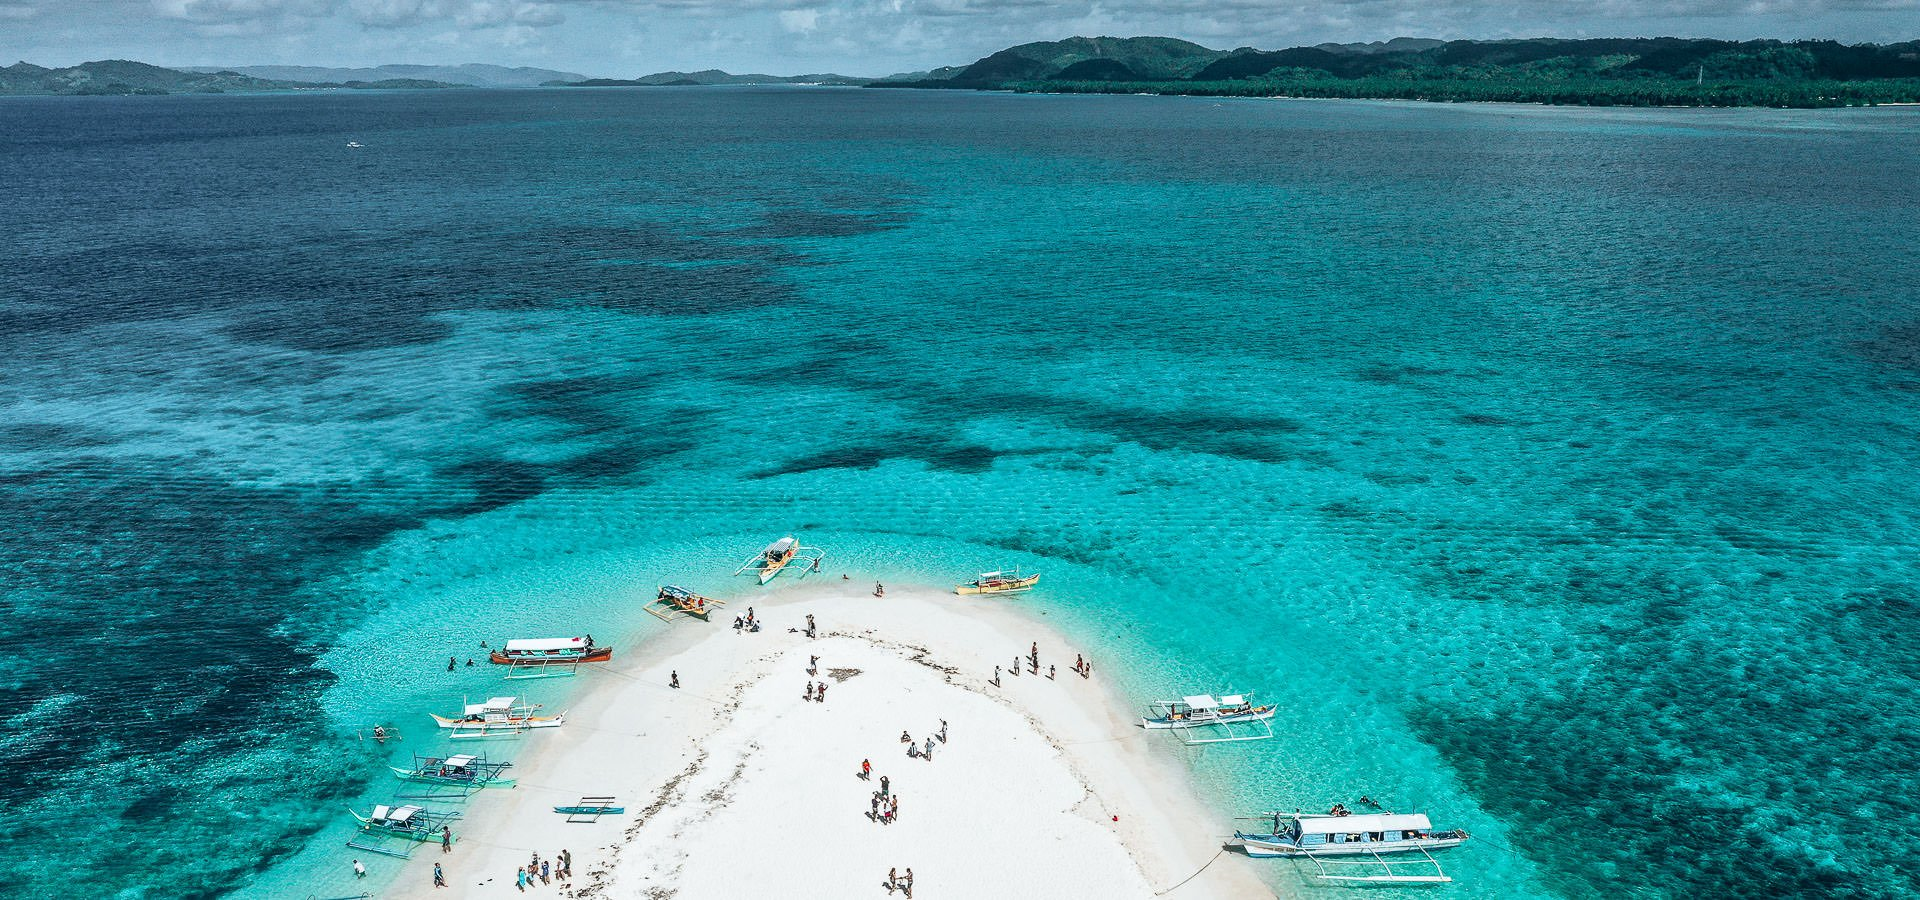 40 Stunning Photos That Will Make You Want To Visit The Philippines   visit the philippines 4